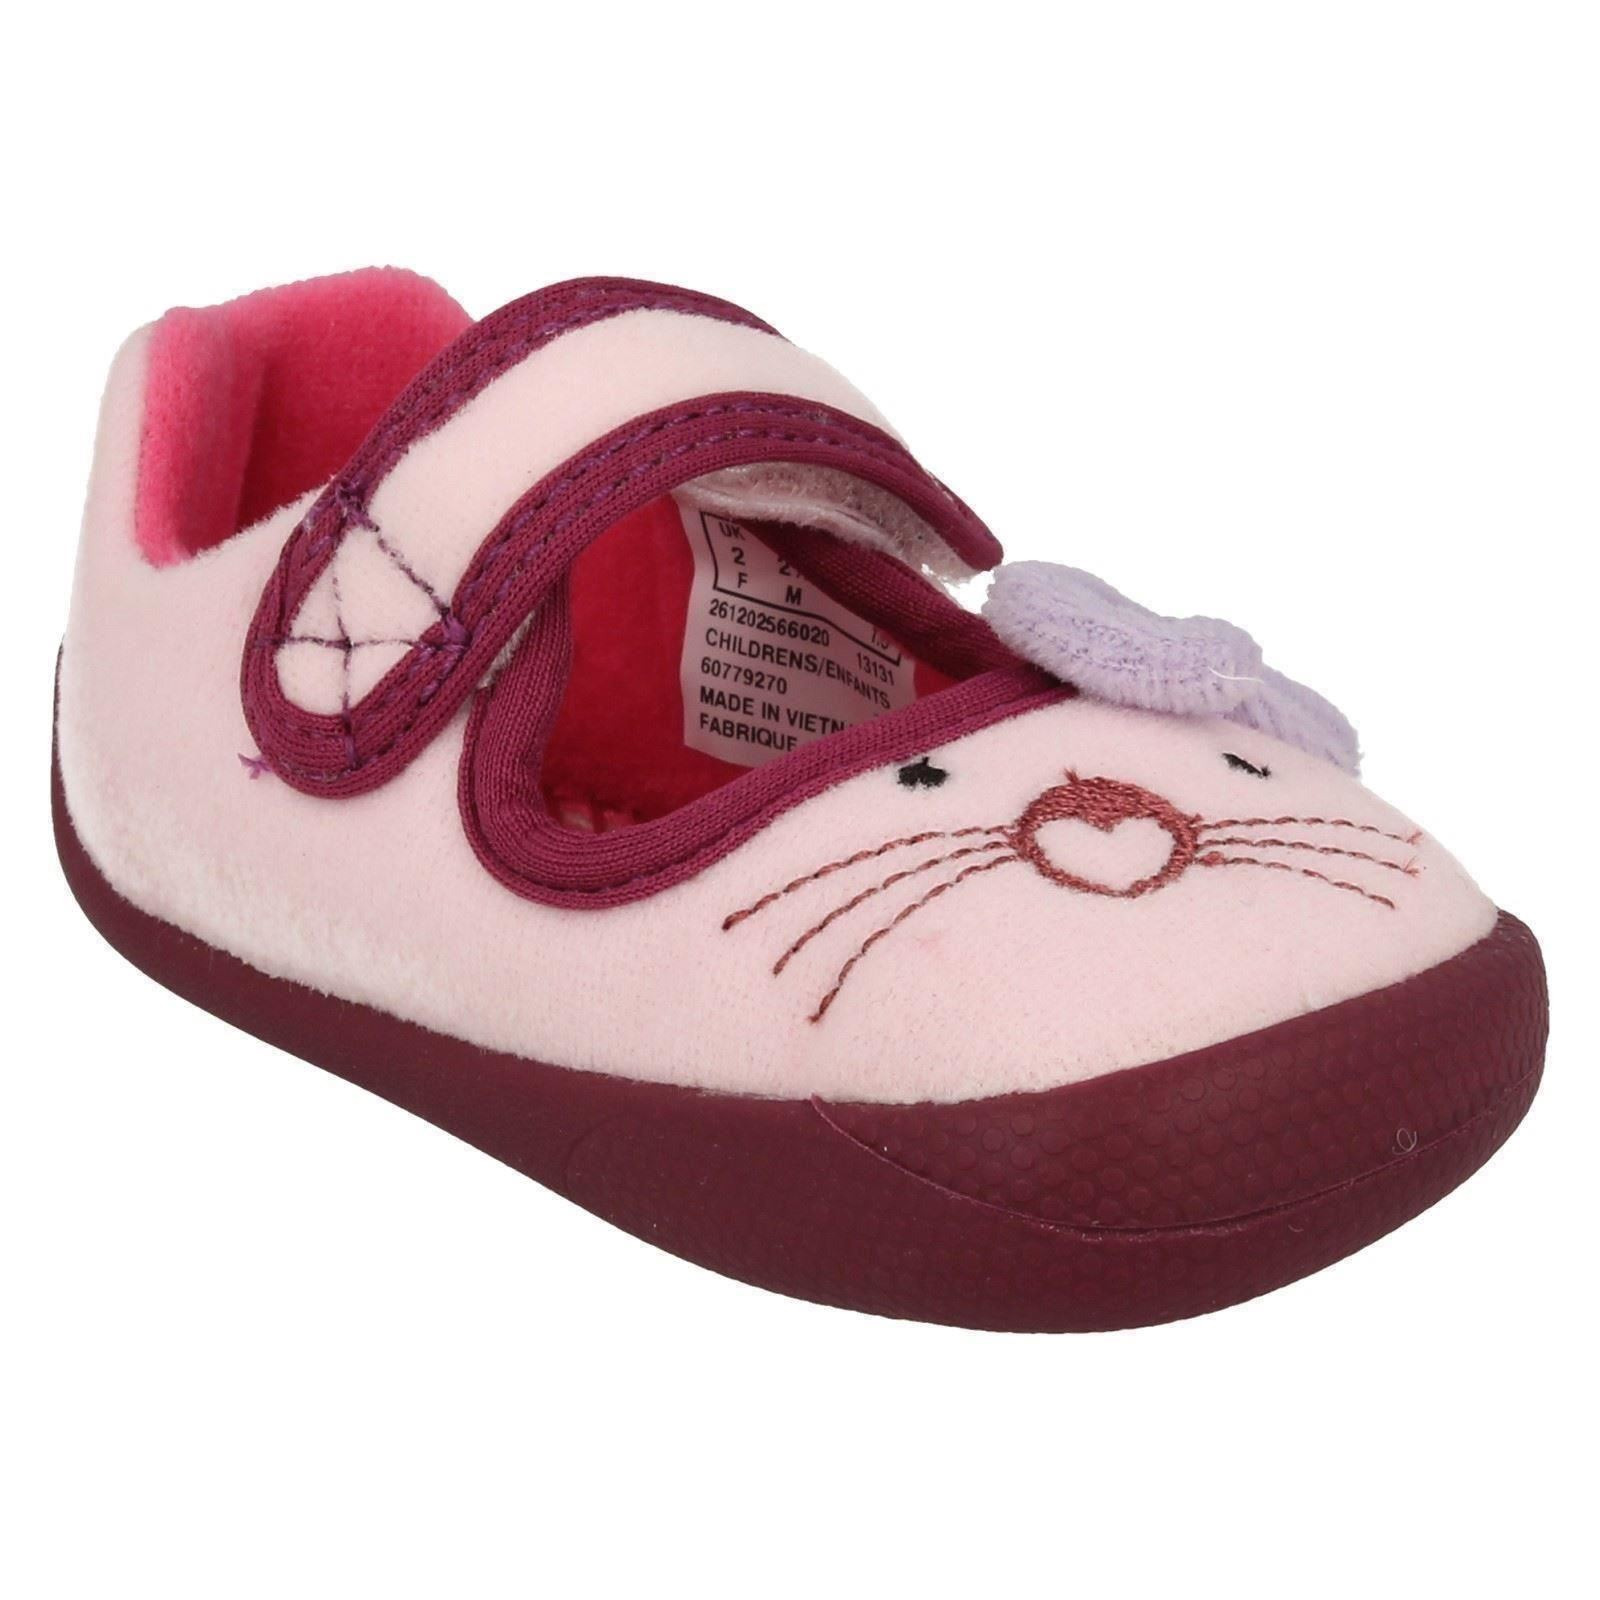 clarks childrens slippers